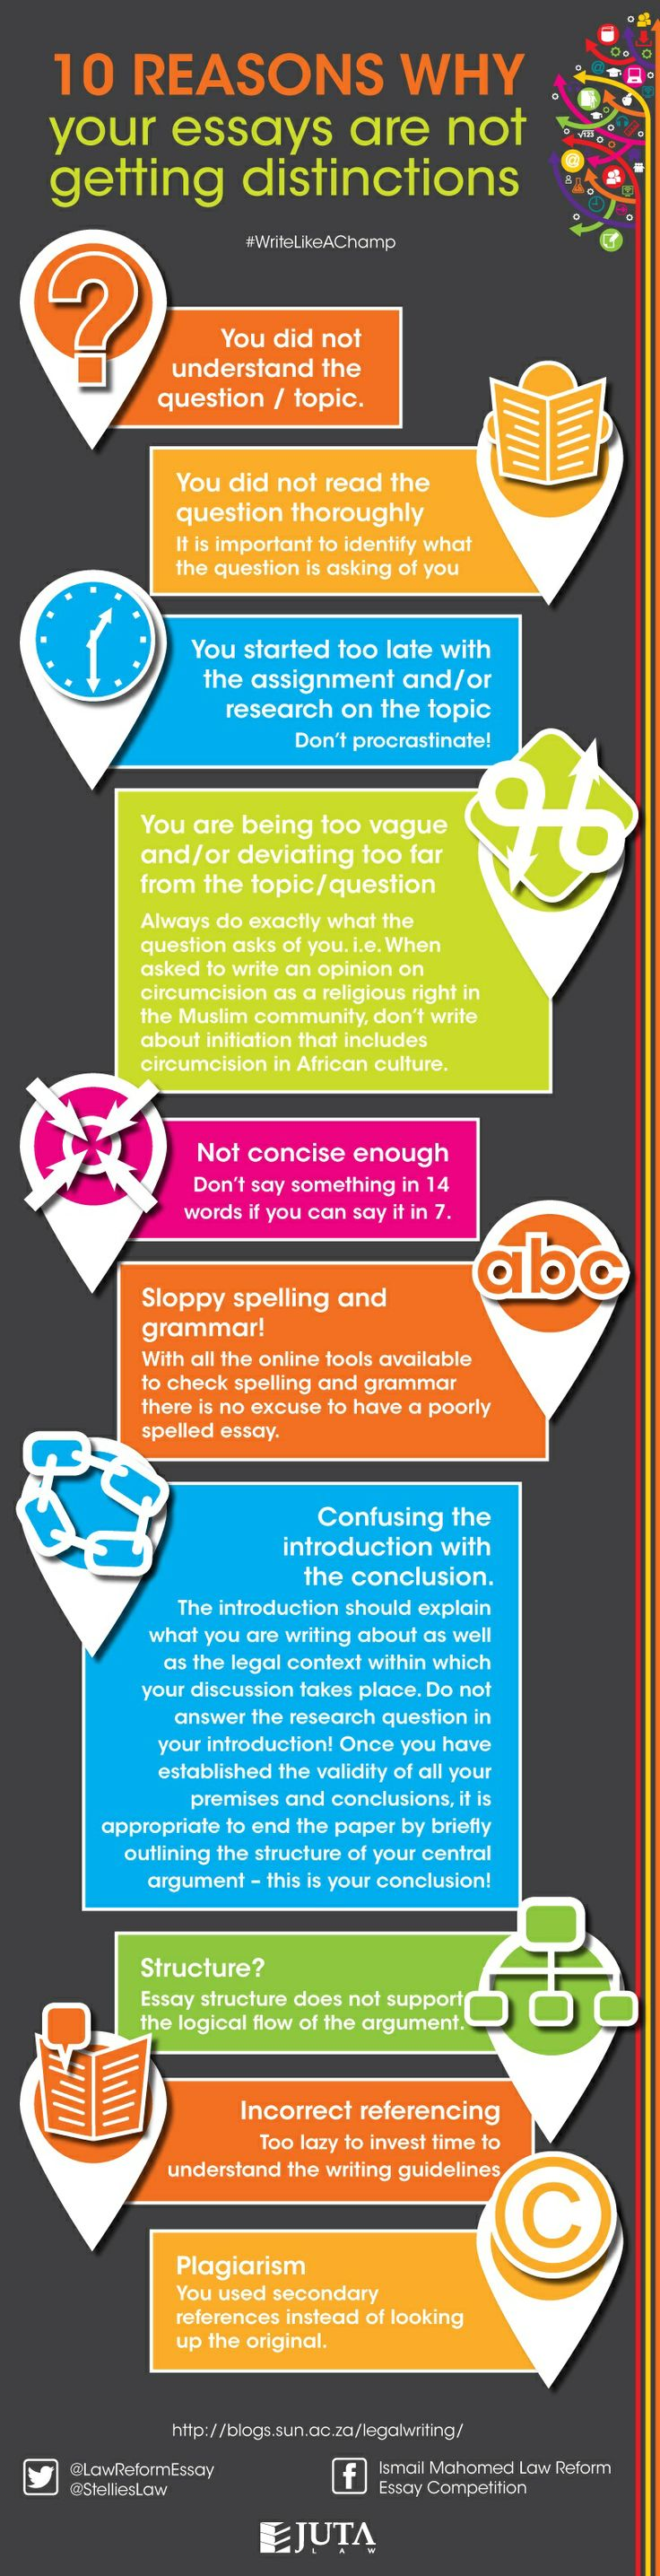 the help essay help by kathryn stockett essay best images about  best images about legal essay writing guidelines infographic the help of stellieslaw we listed the 10